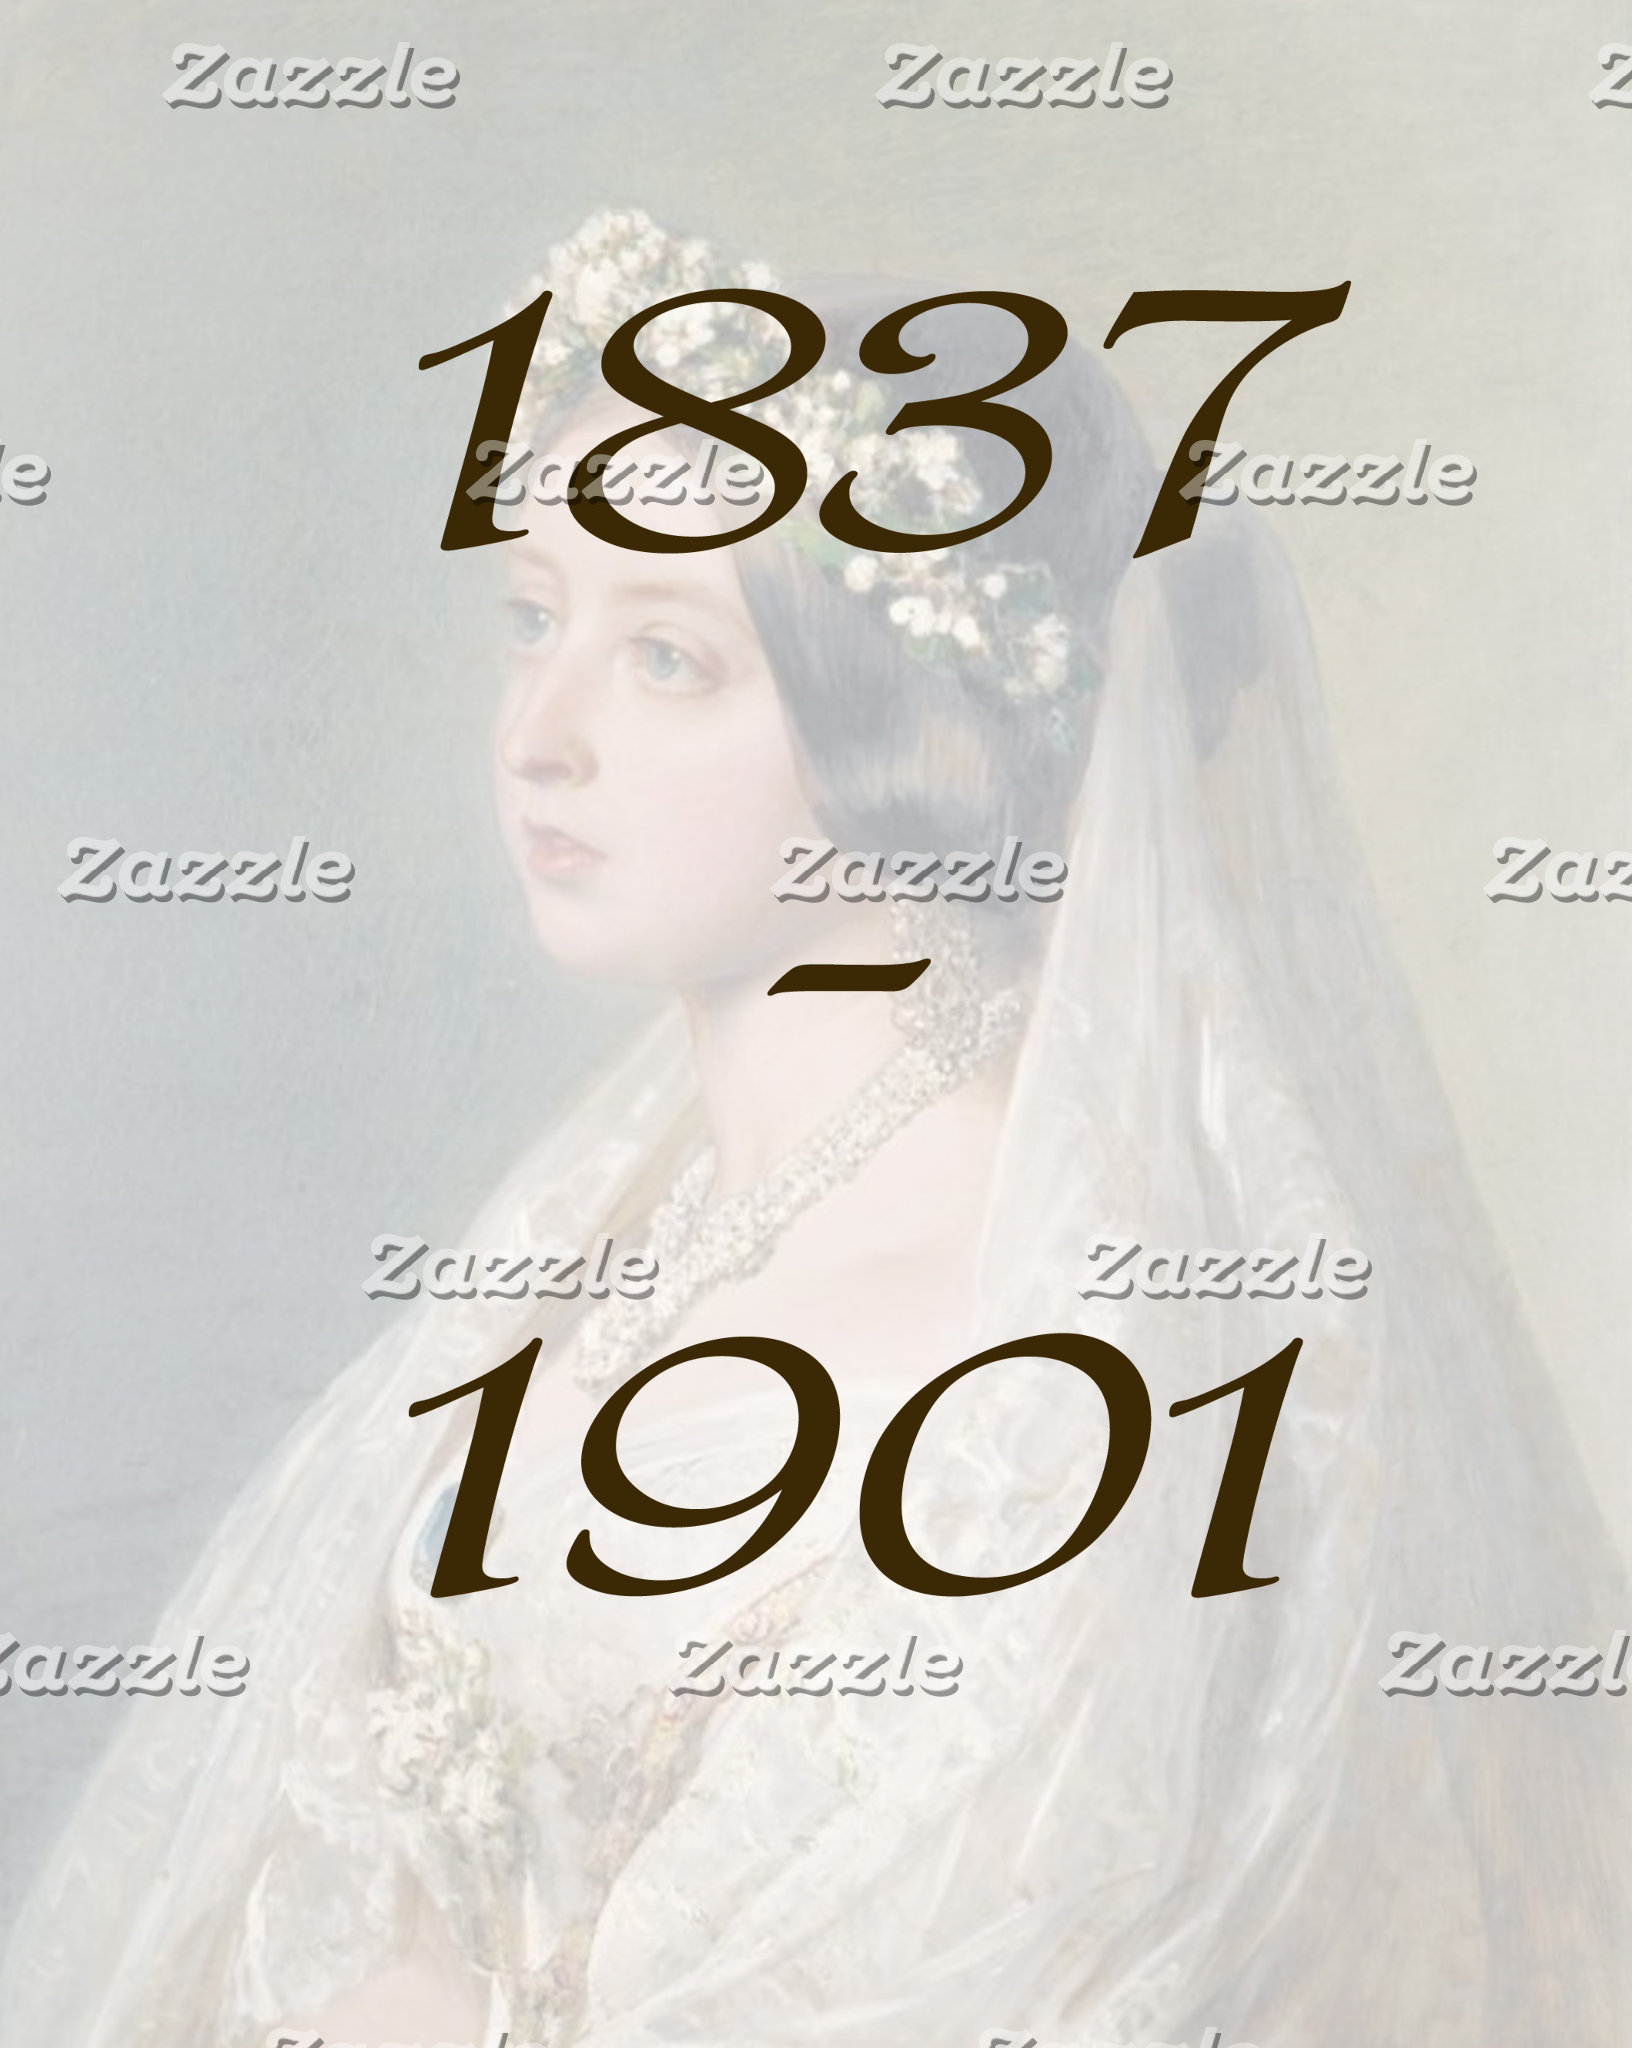 1837-1901 - Victorian Years